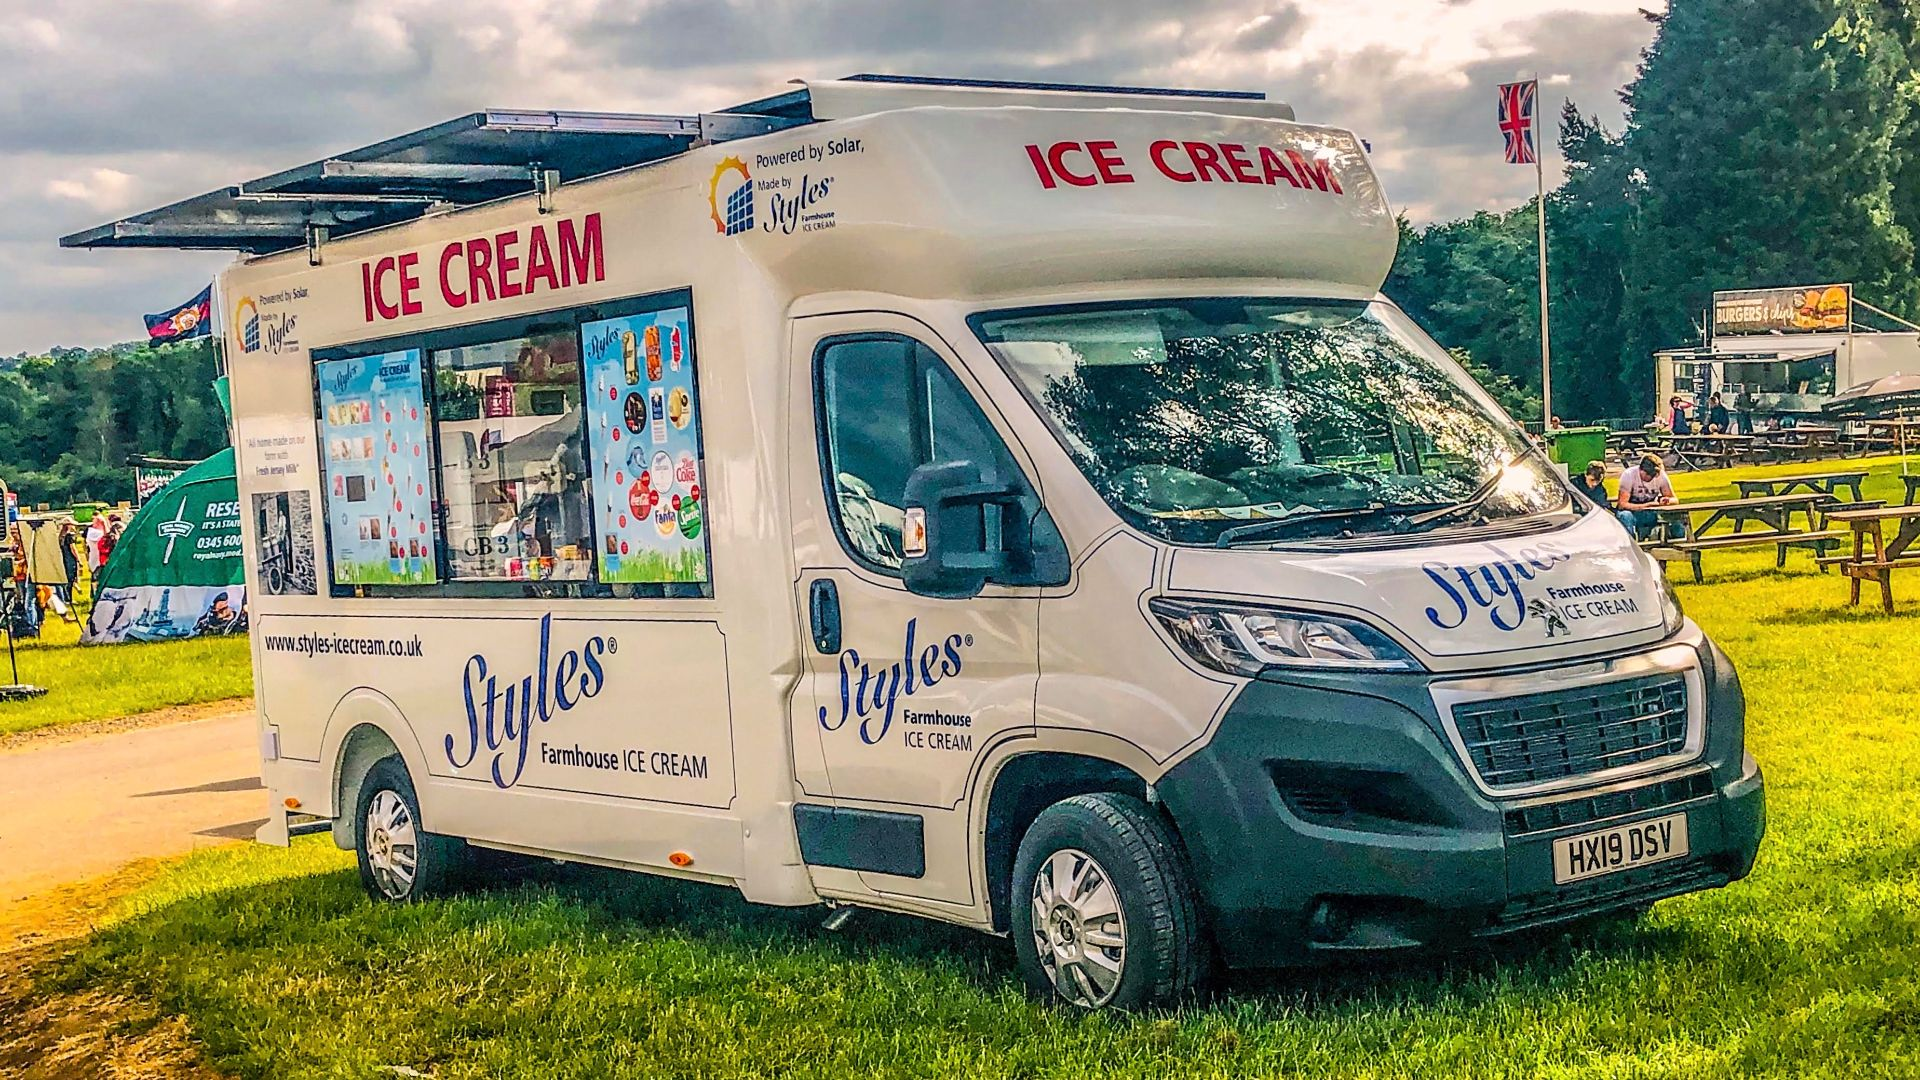 Styles Solar Van world's first electric ice cream van